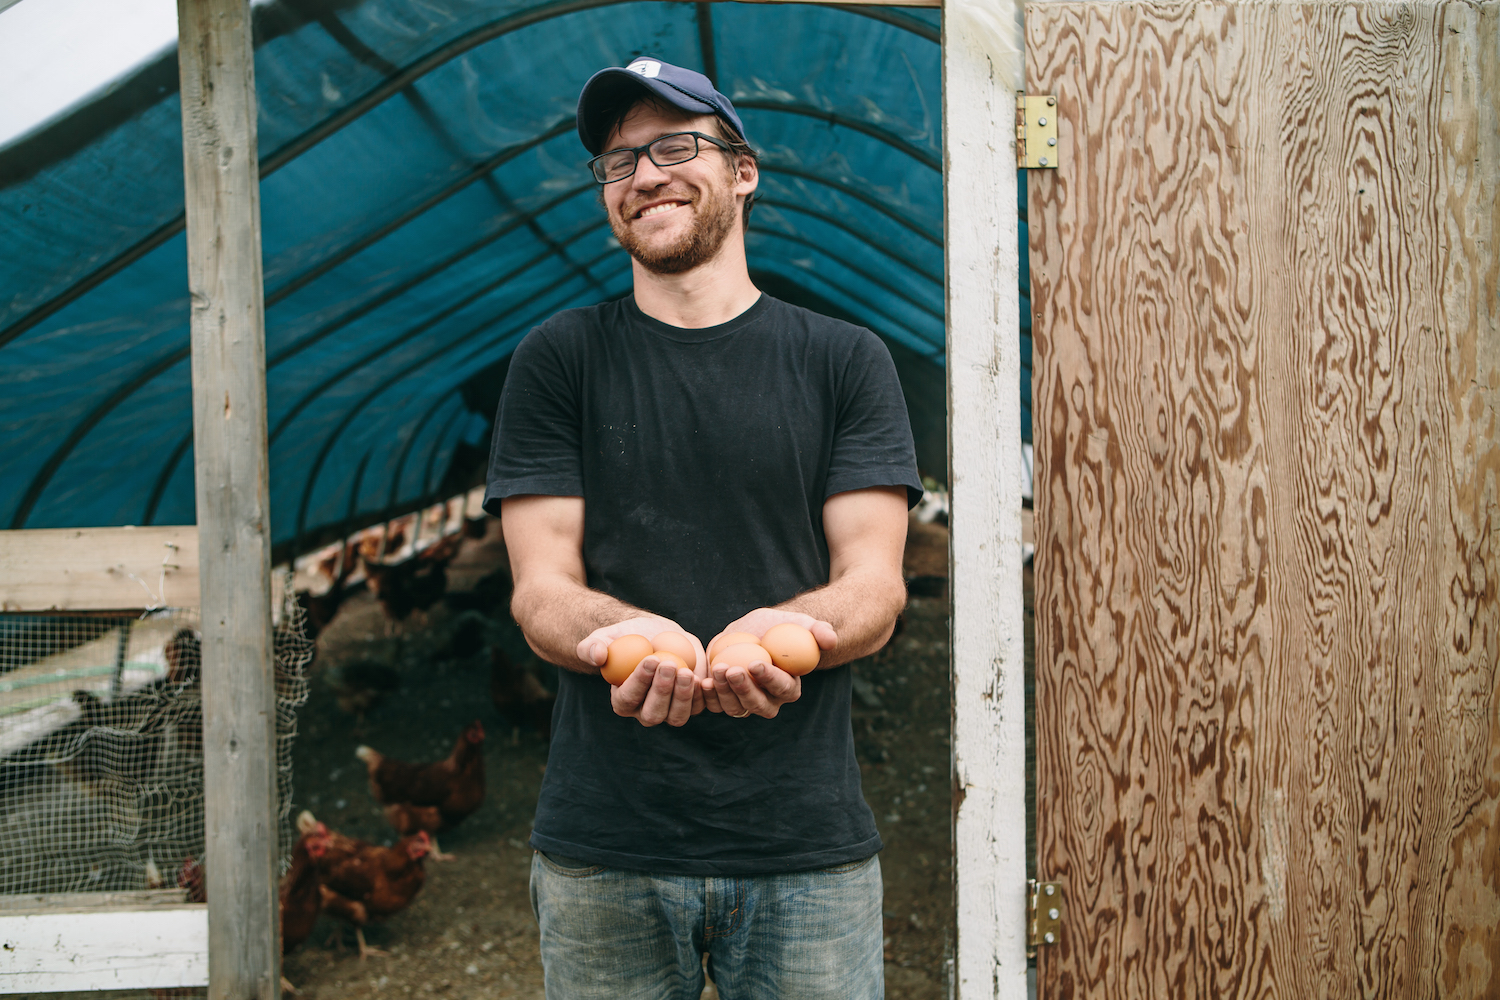 Ben Butterfield collecting pasture-raised eggs from Besteyfield Farm's laying hens